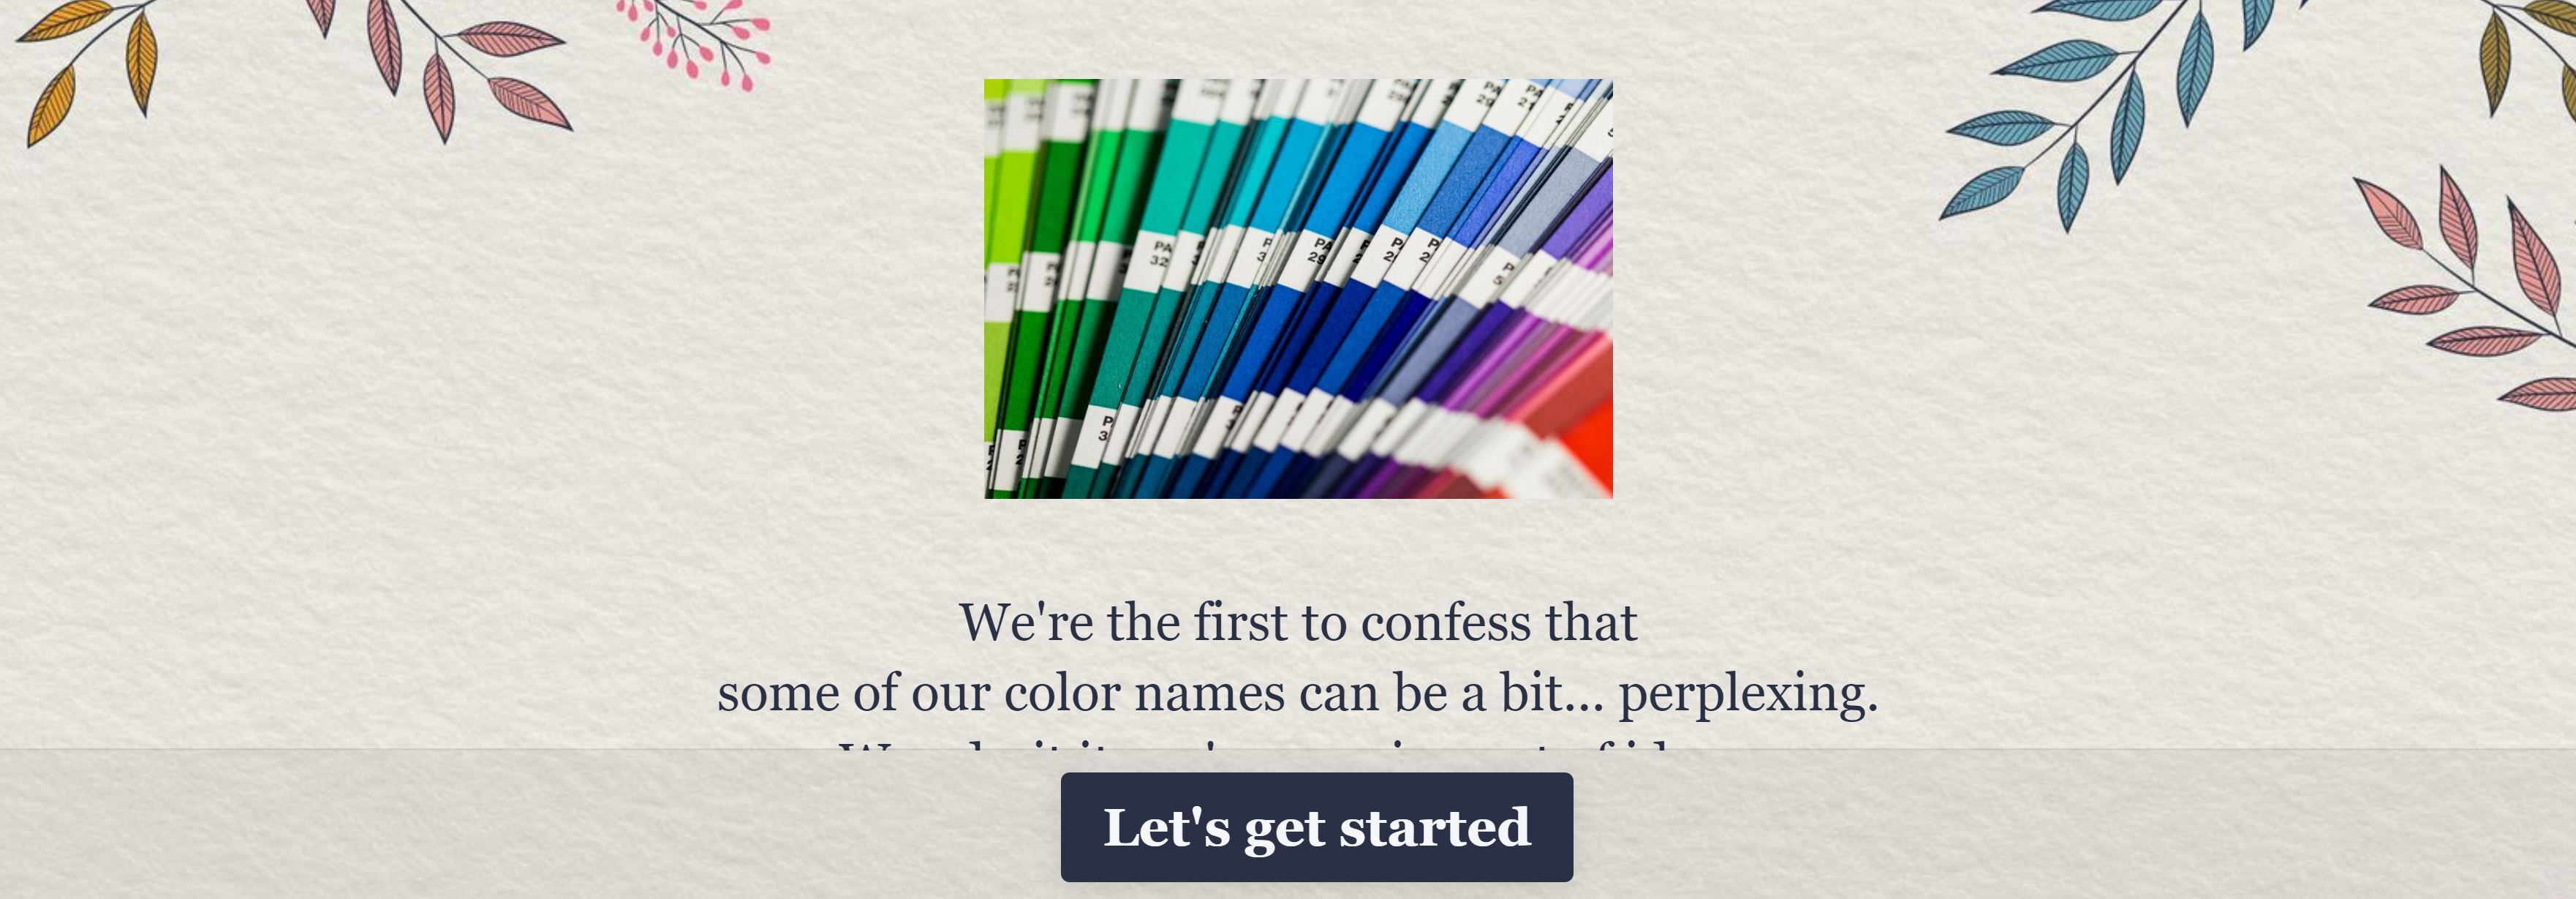 Help us name our colors and win $100 GC